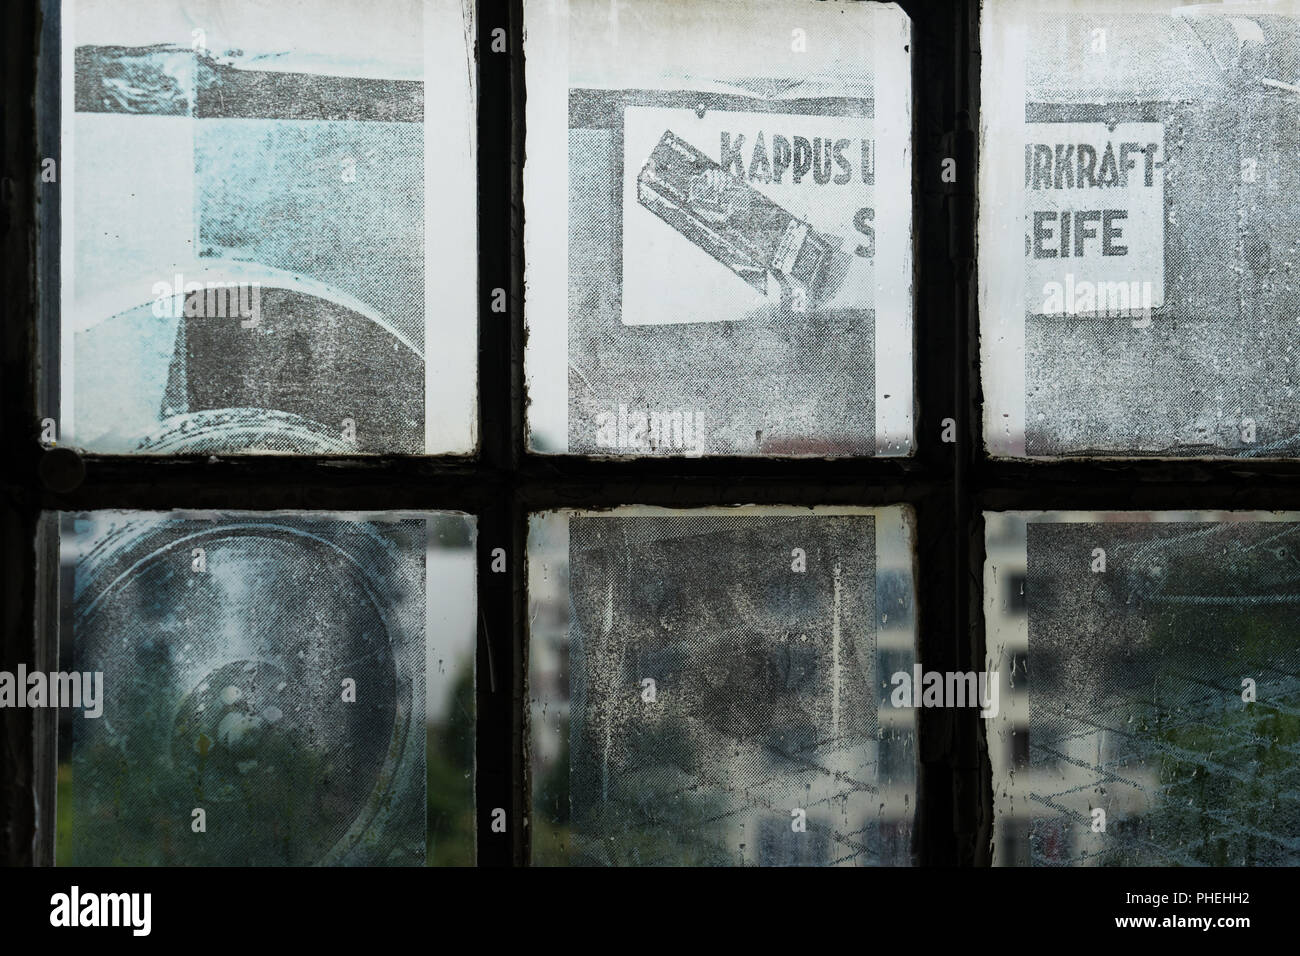 Historic Promotion Photo of an Soap Factory - Stock Image